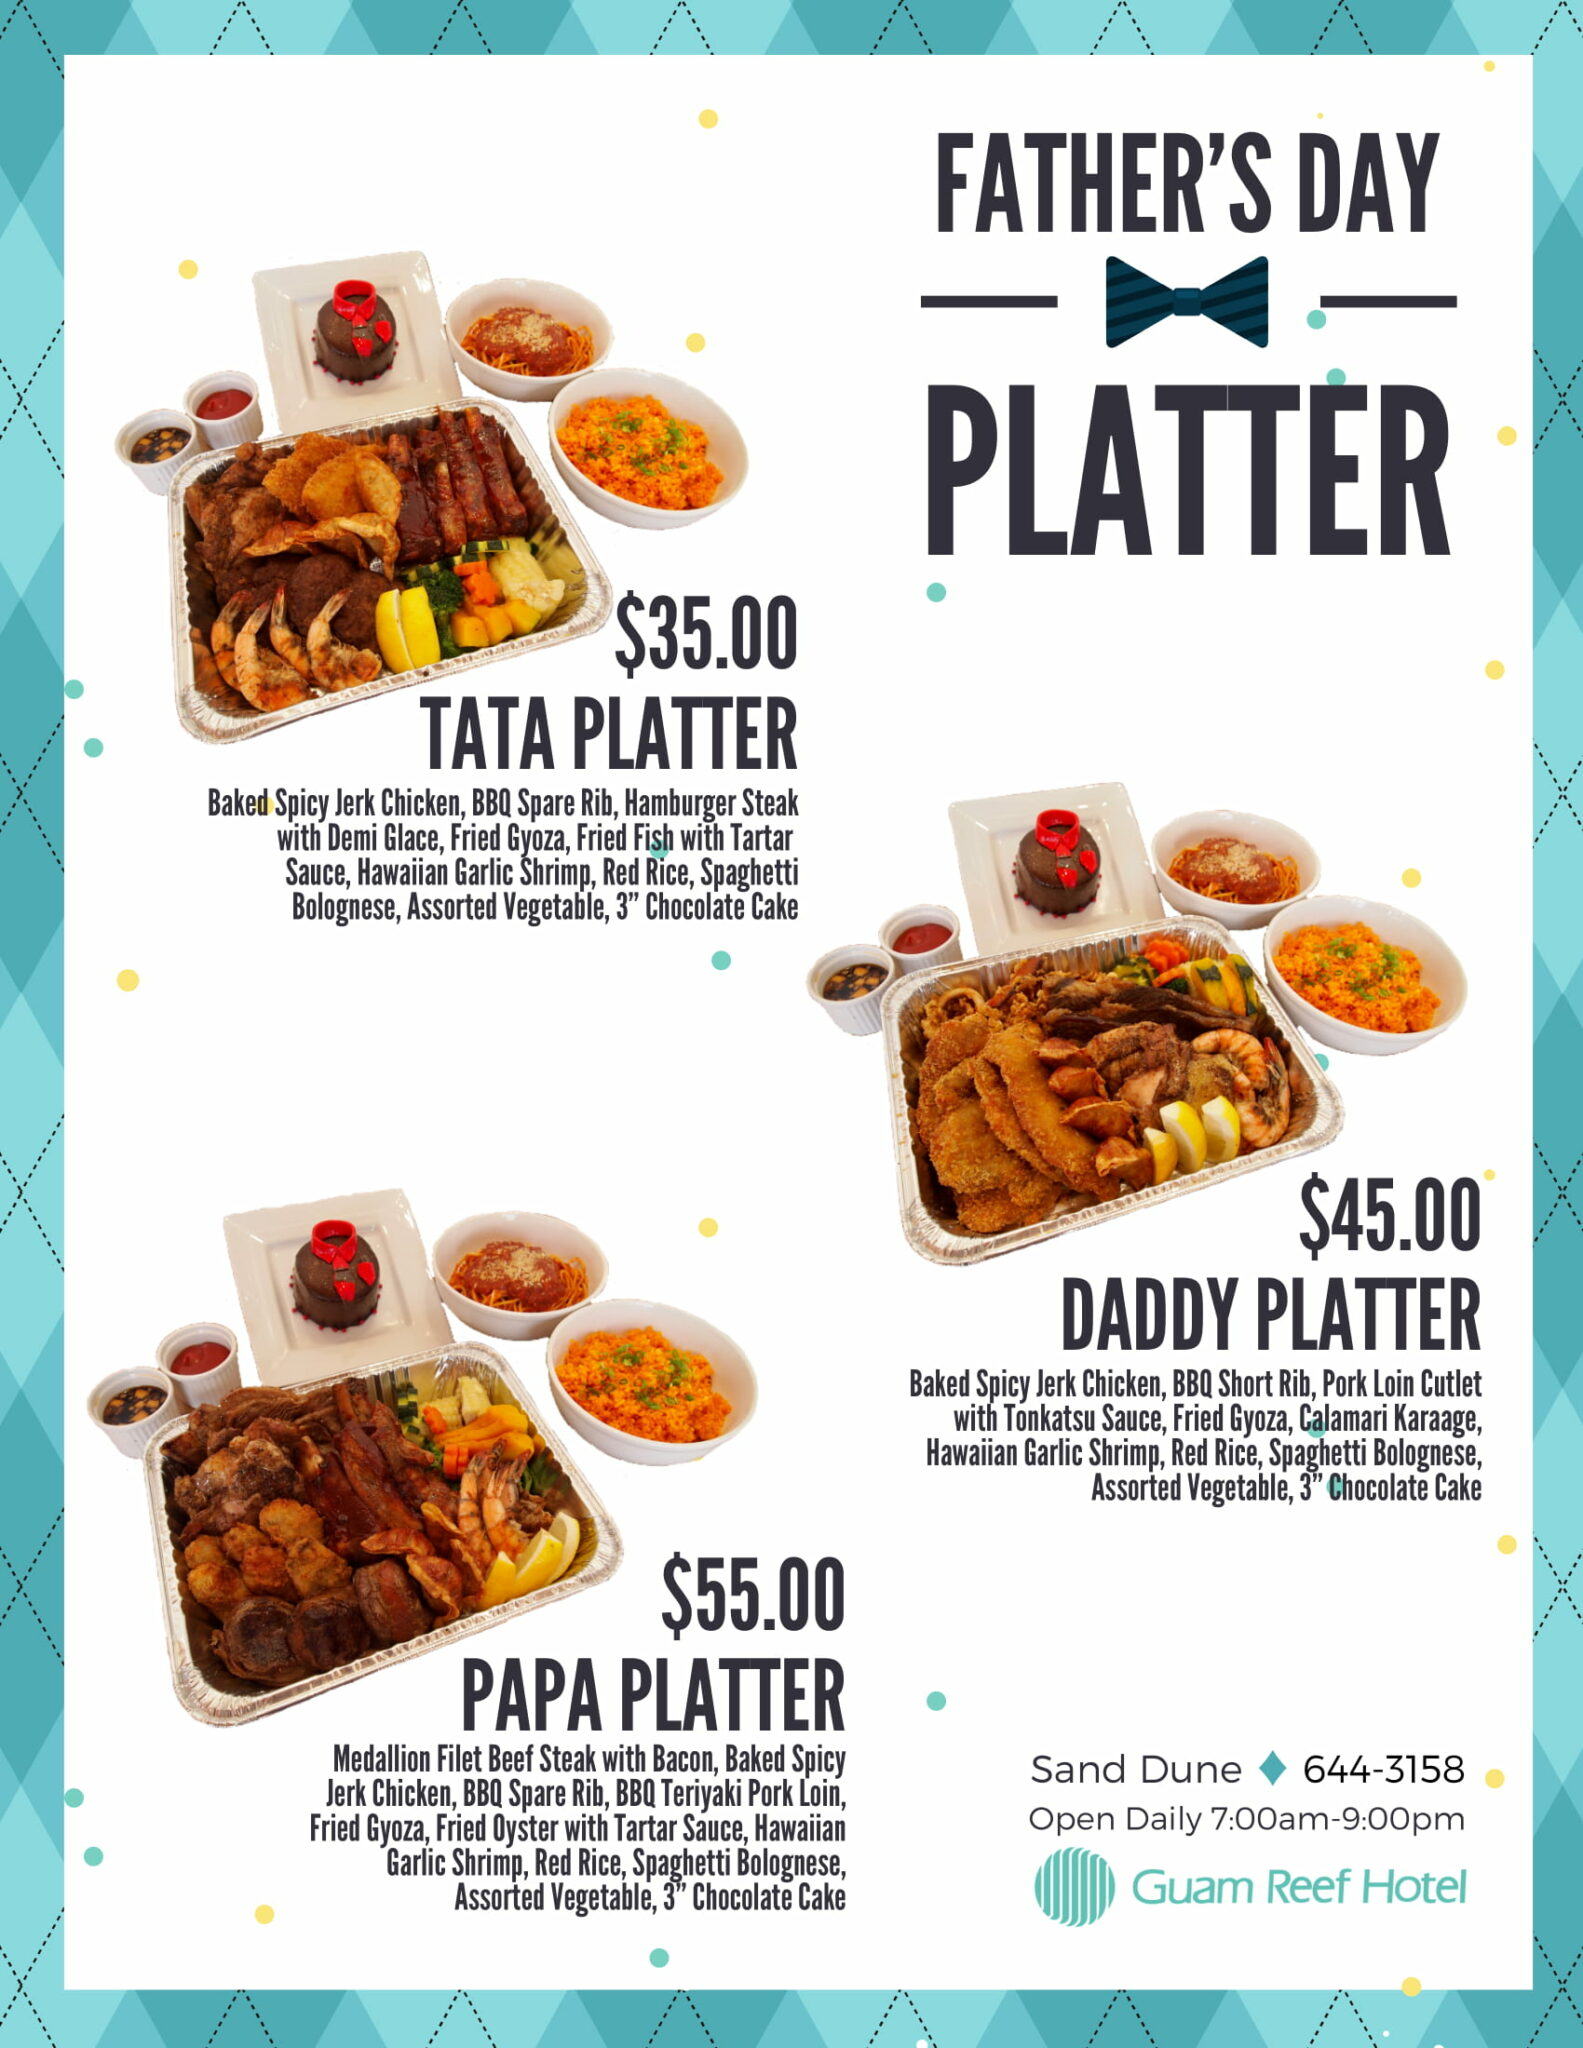 【Sand Dune】Father's Day Special Menu